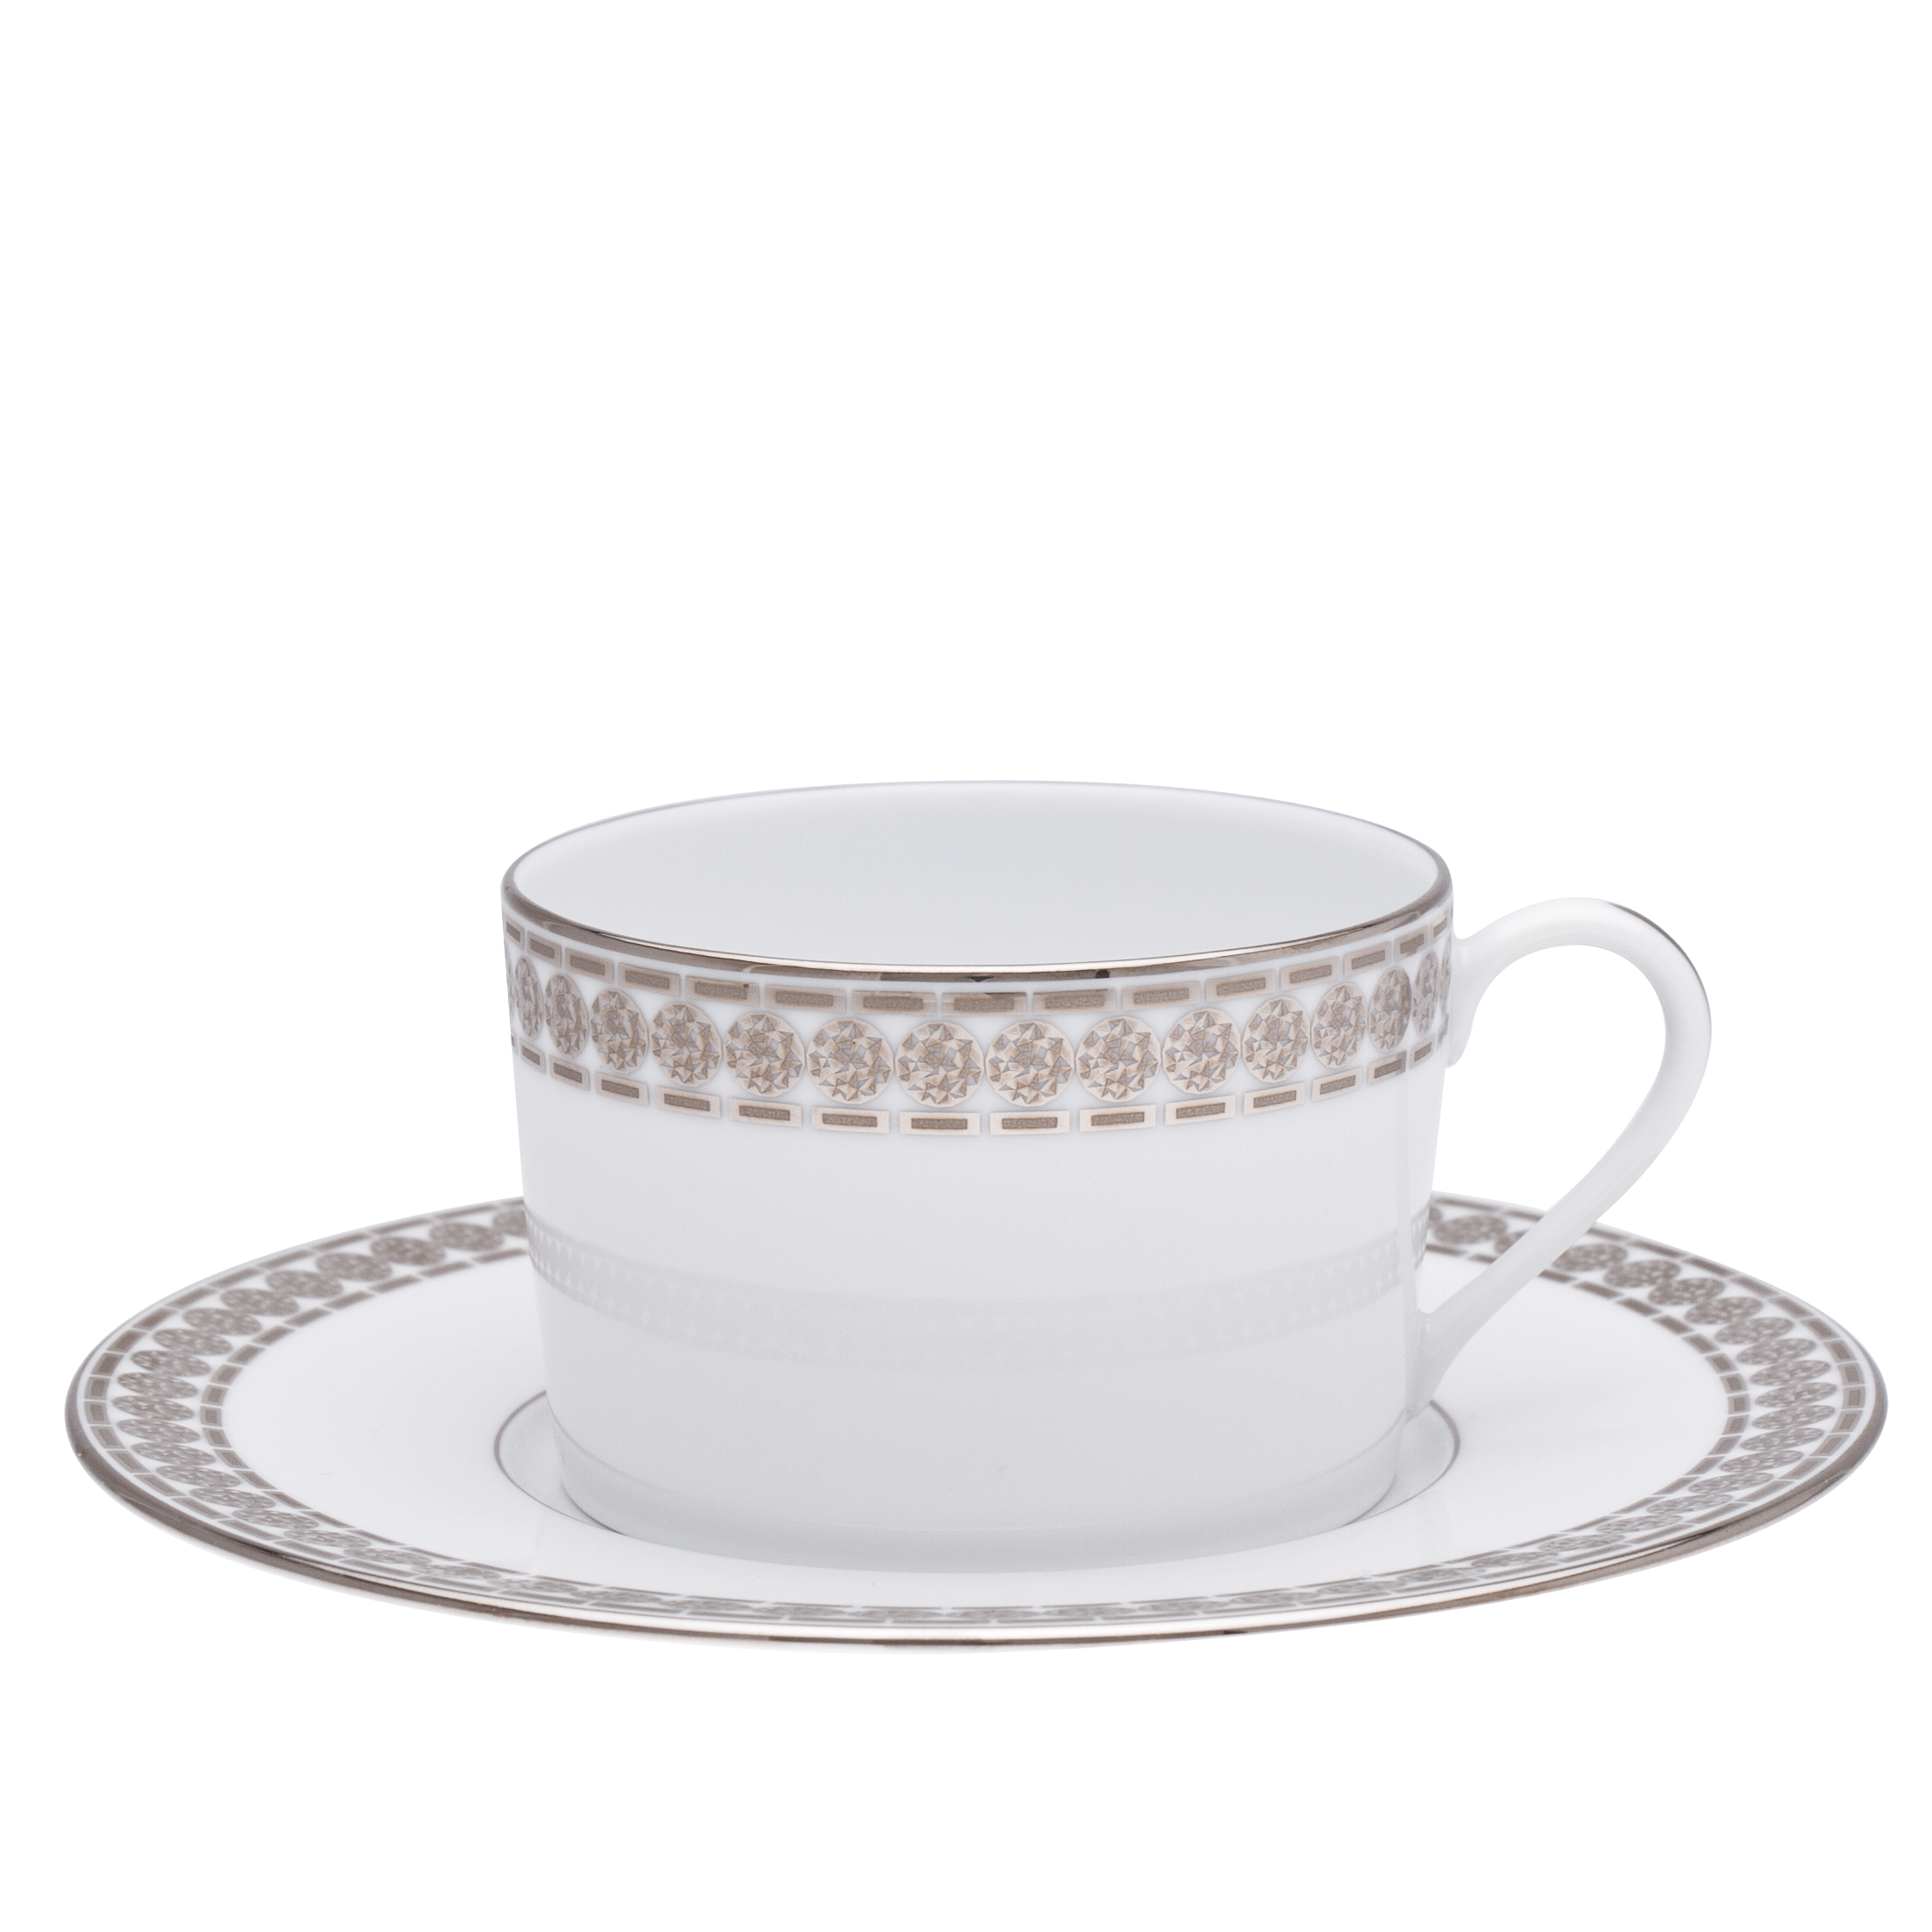 Éternité, Tea Cup and Saucer